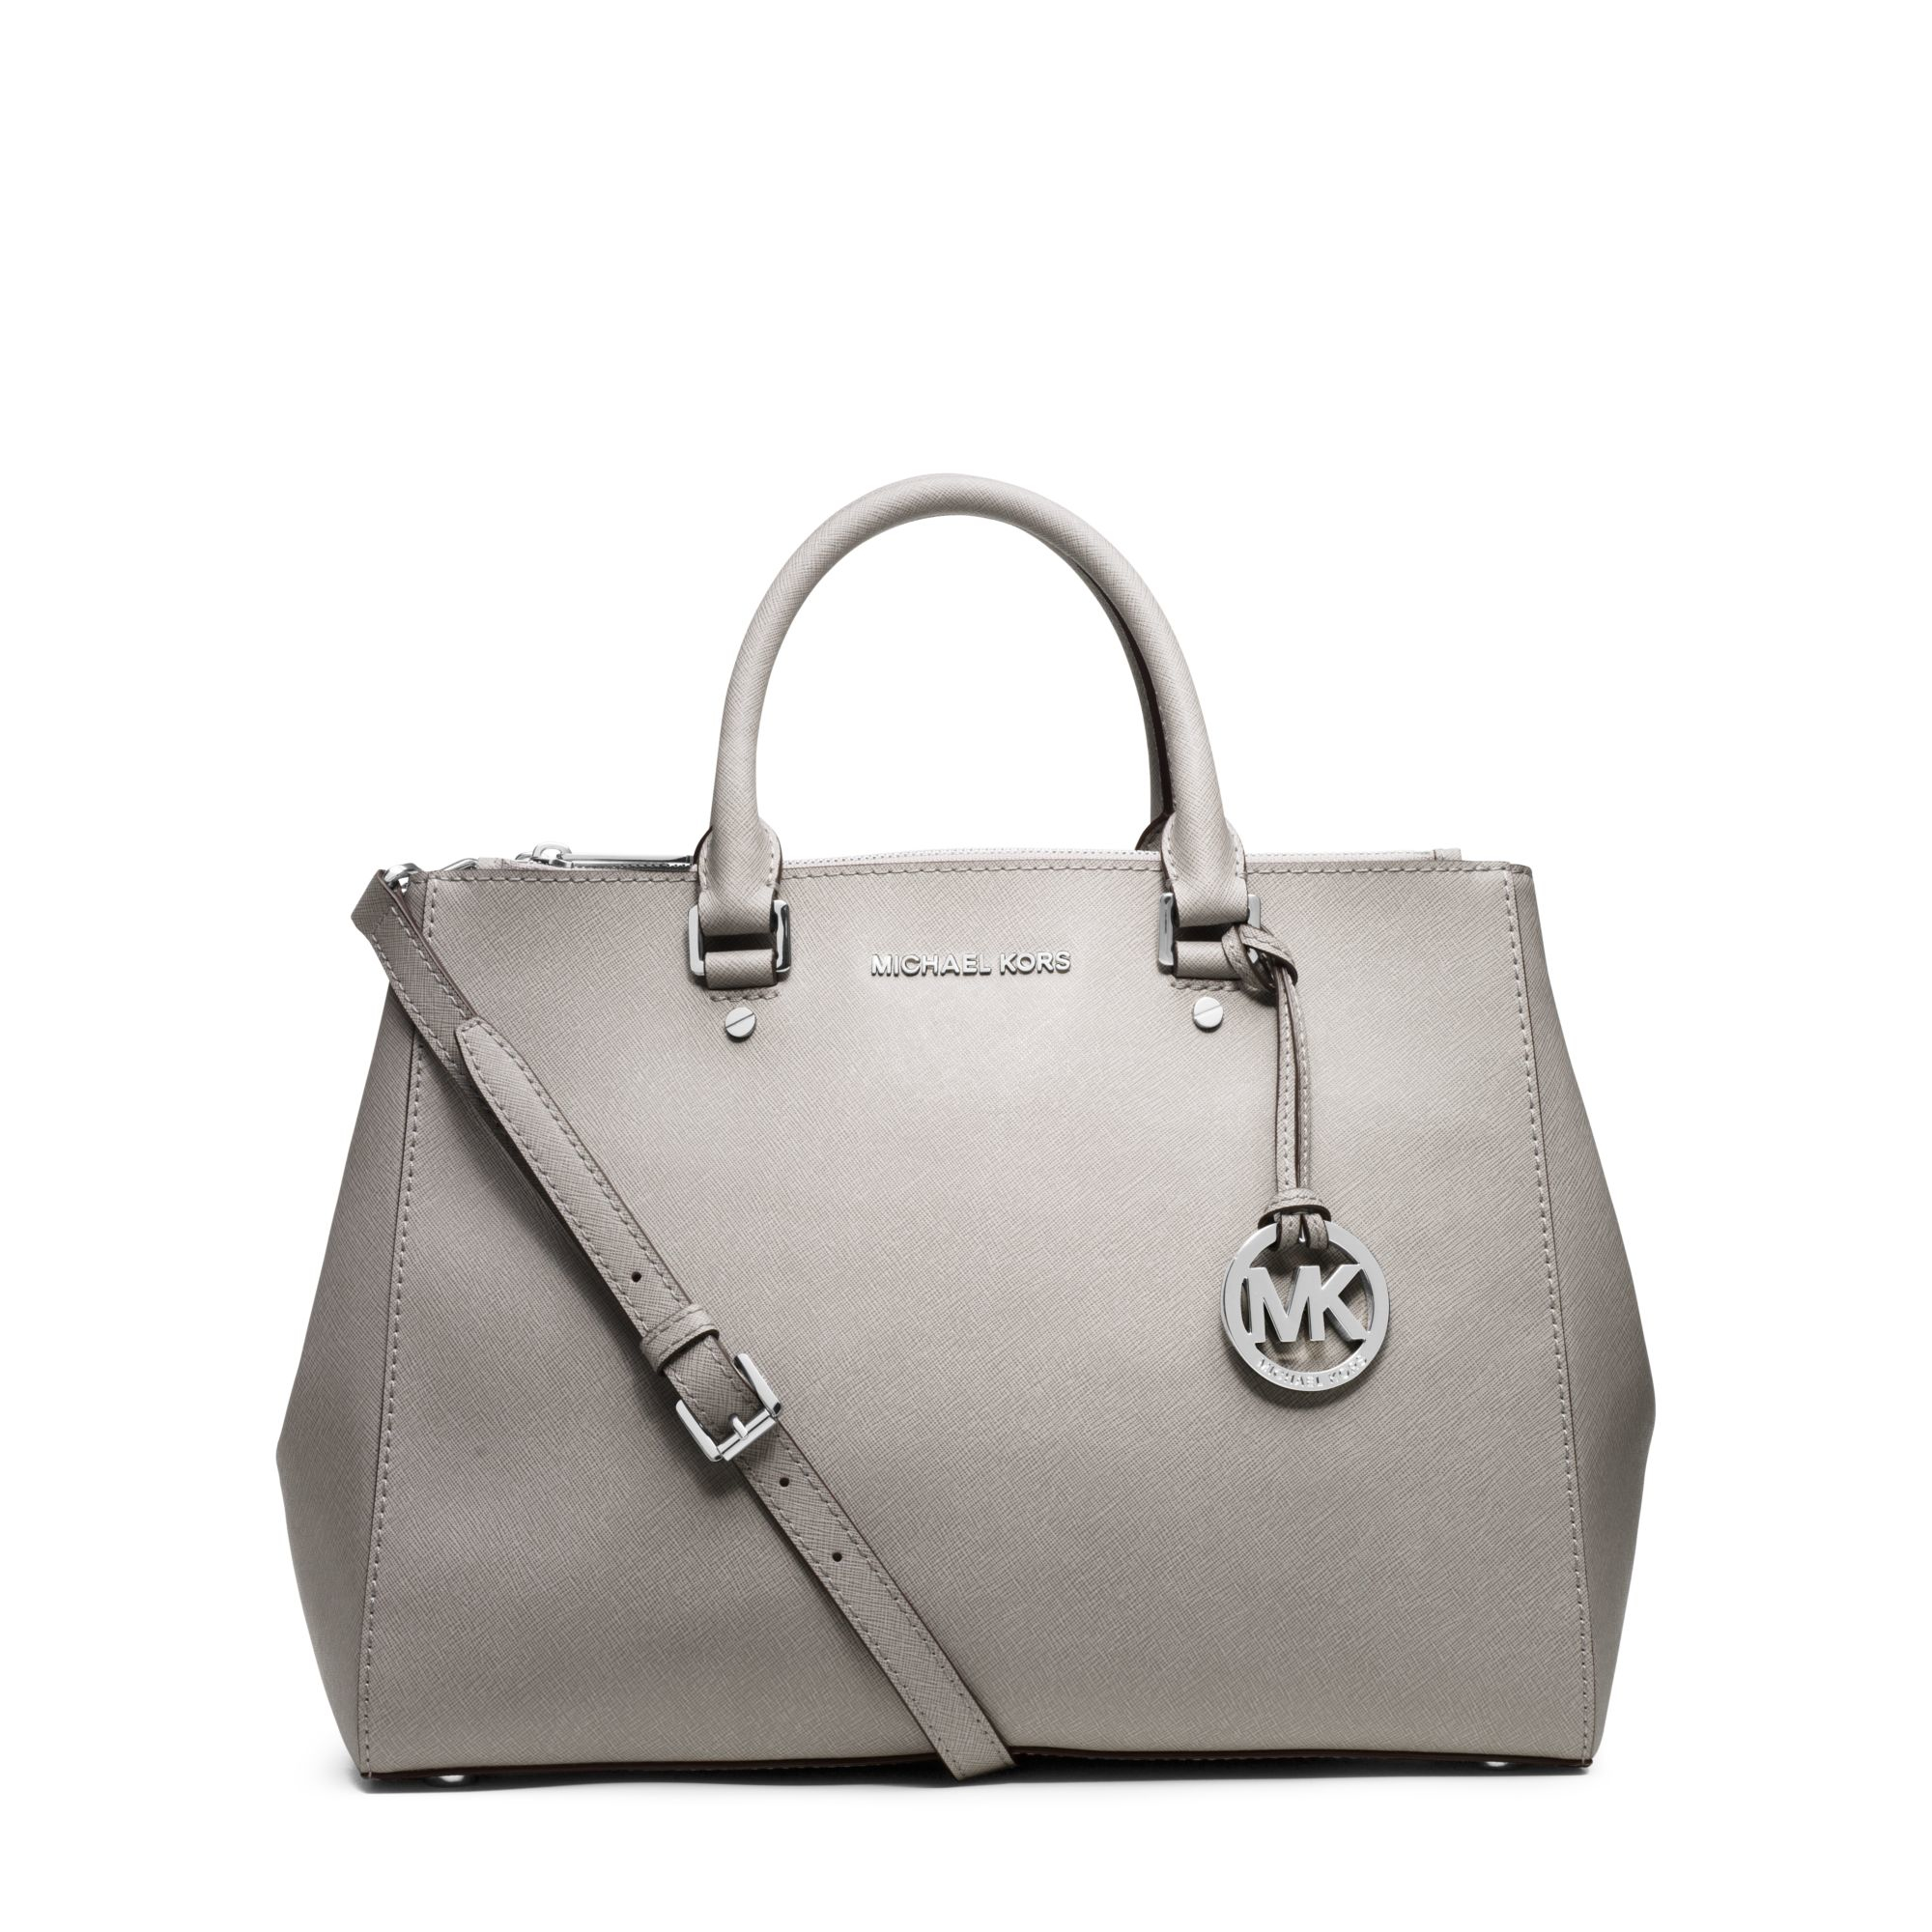 f9749f6c0f2a Lyst - Michael Kors Sutton Saffiano-Leather Satchel in White